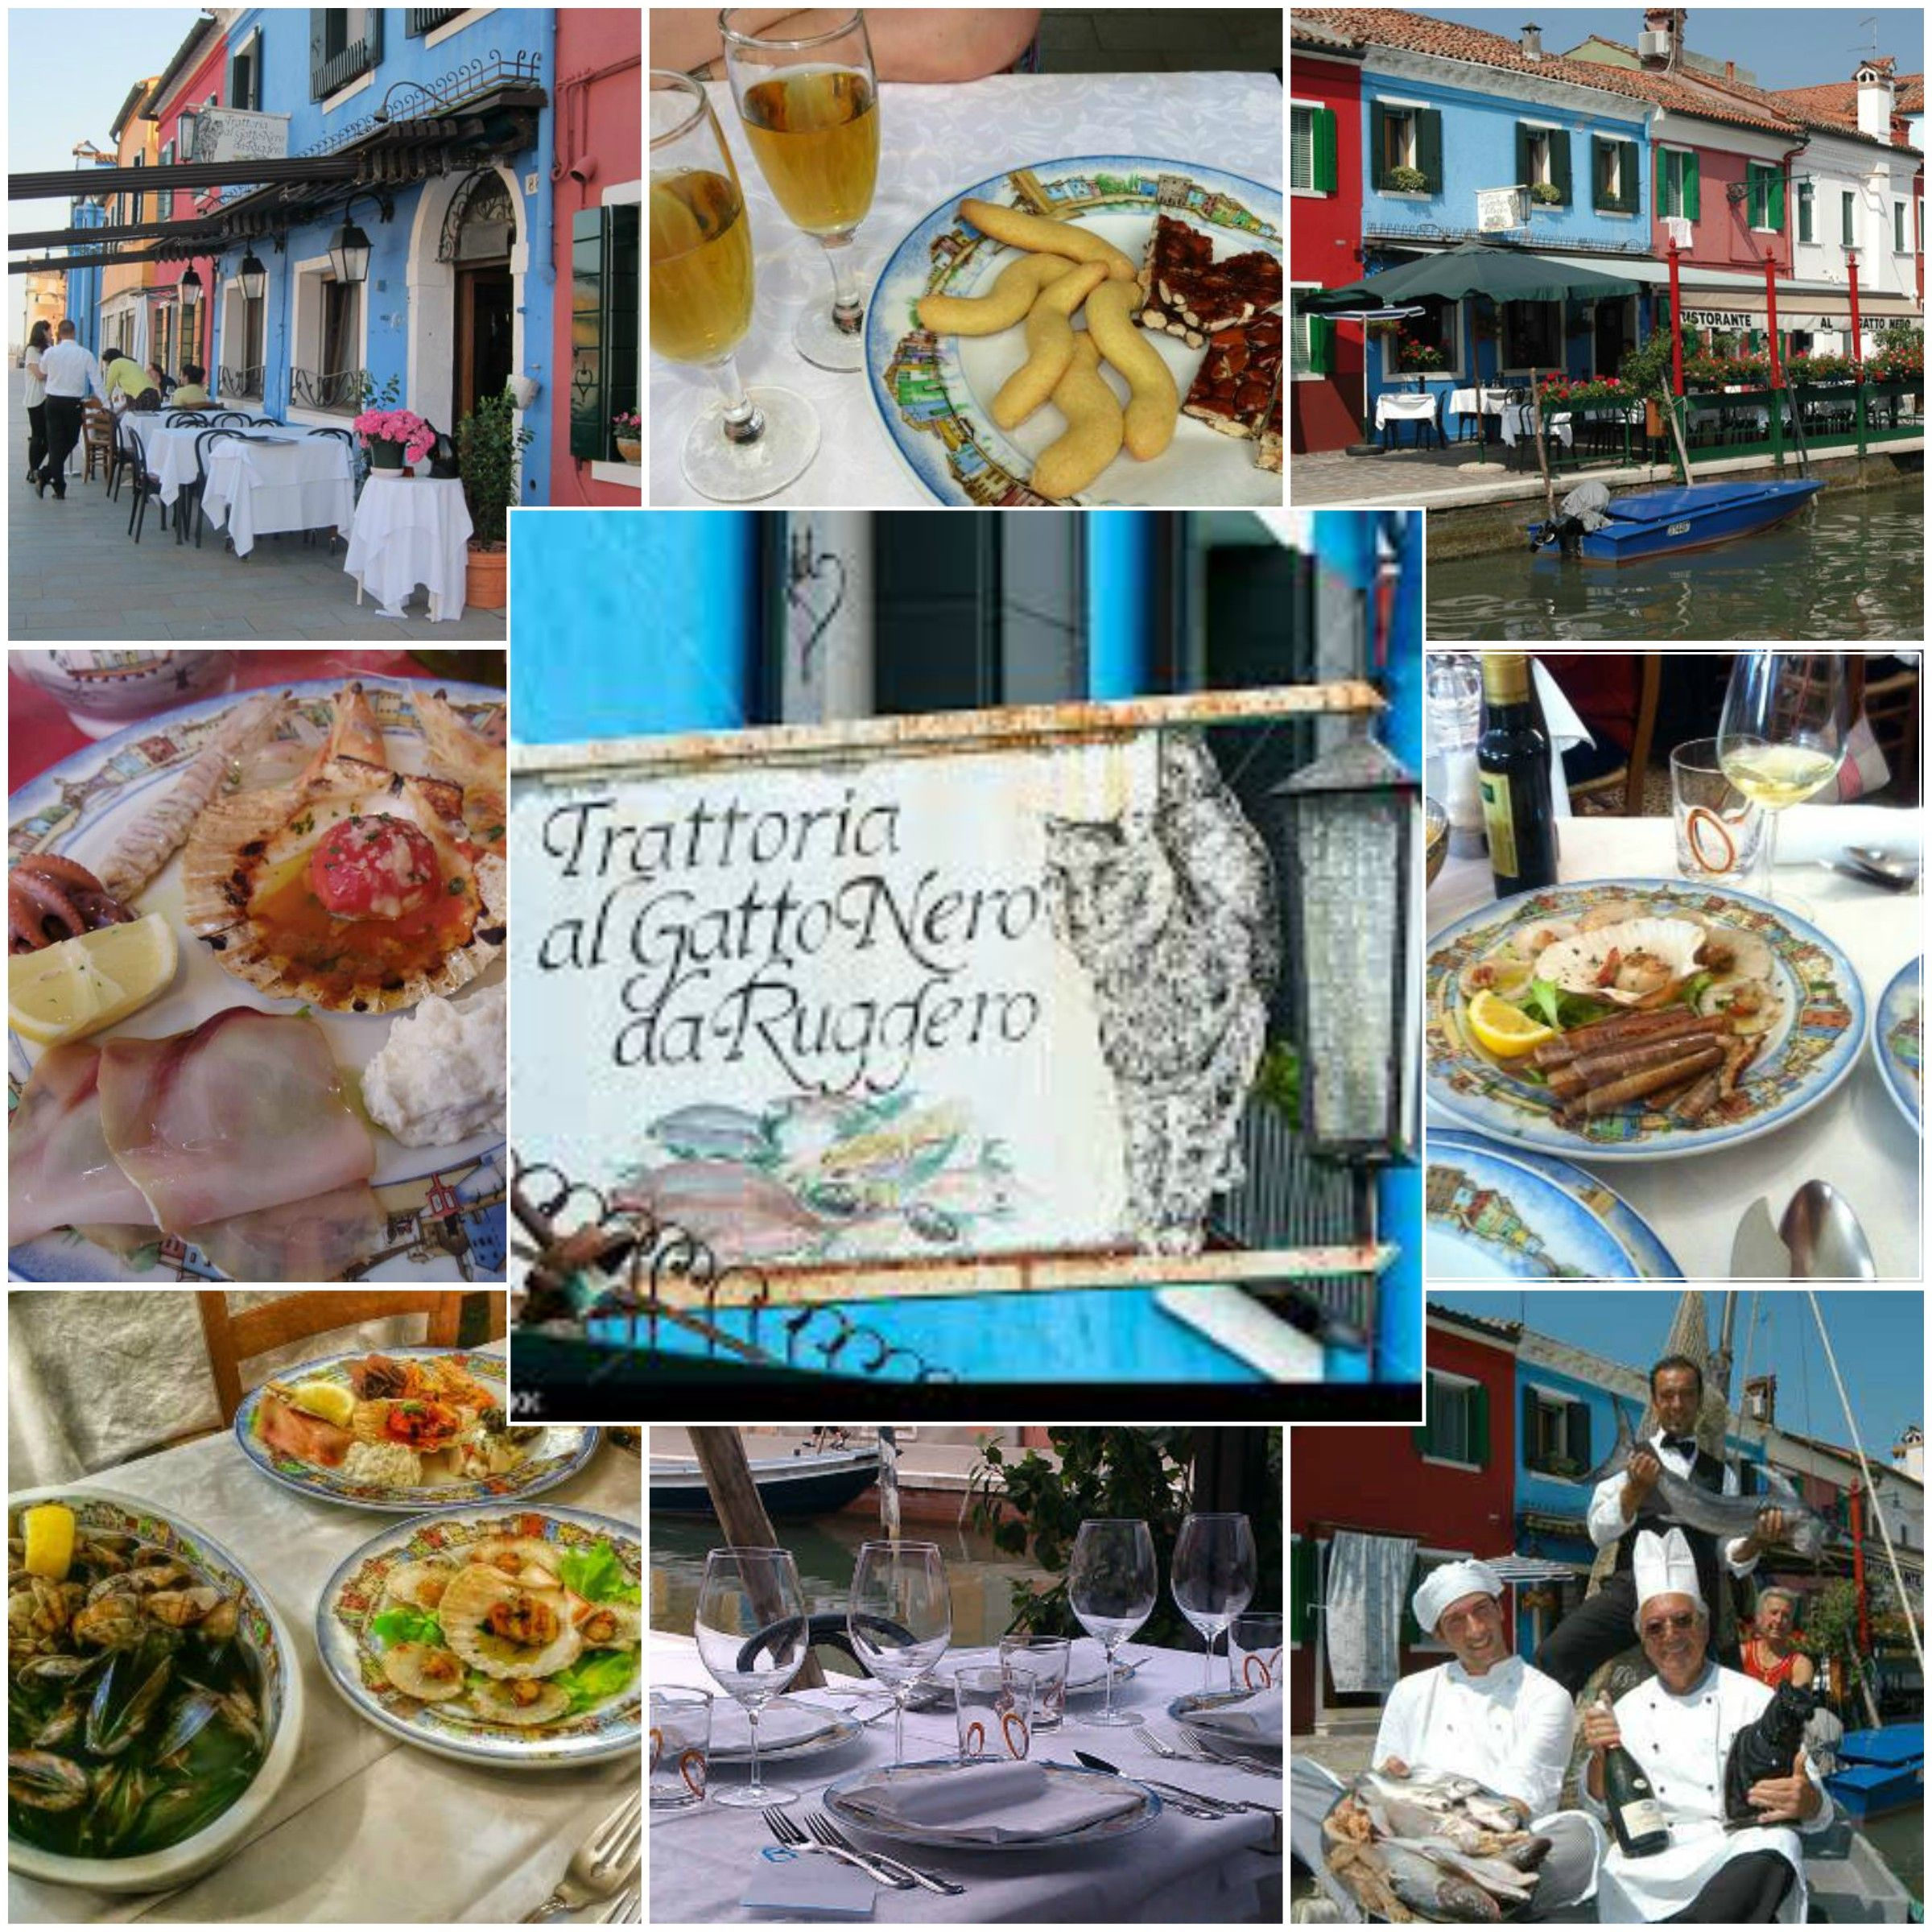 Al Gatto Nero Da Ruggero Burano Italy Day 14 Dinner Italy